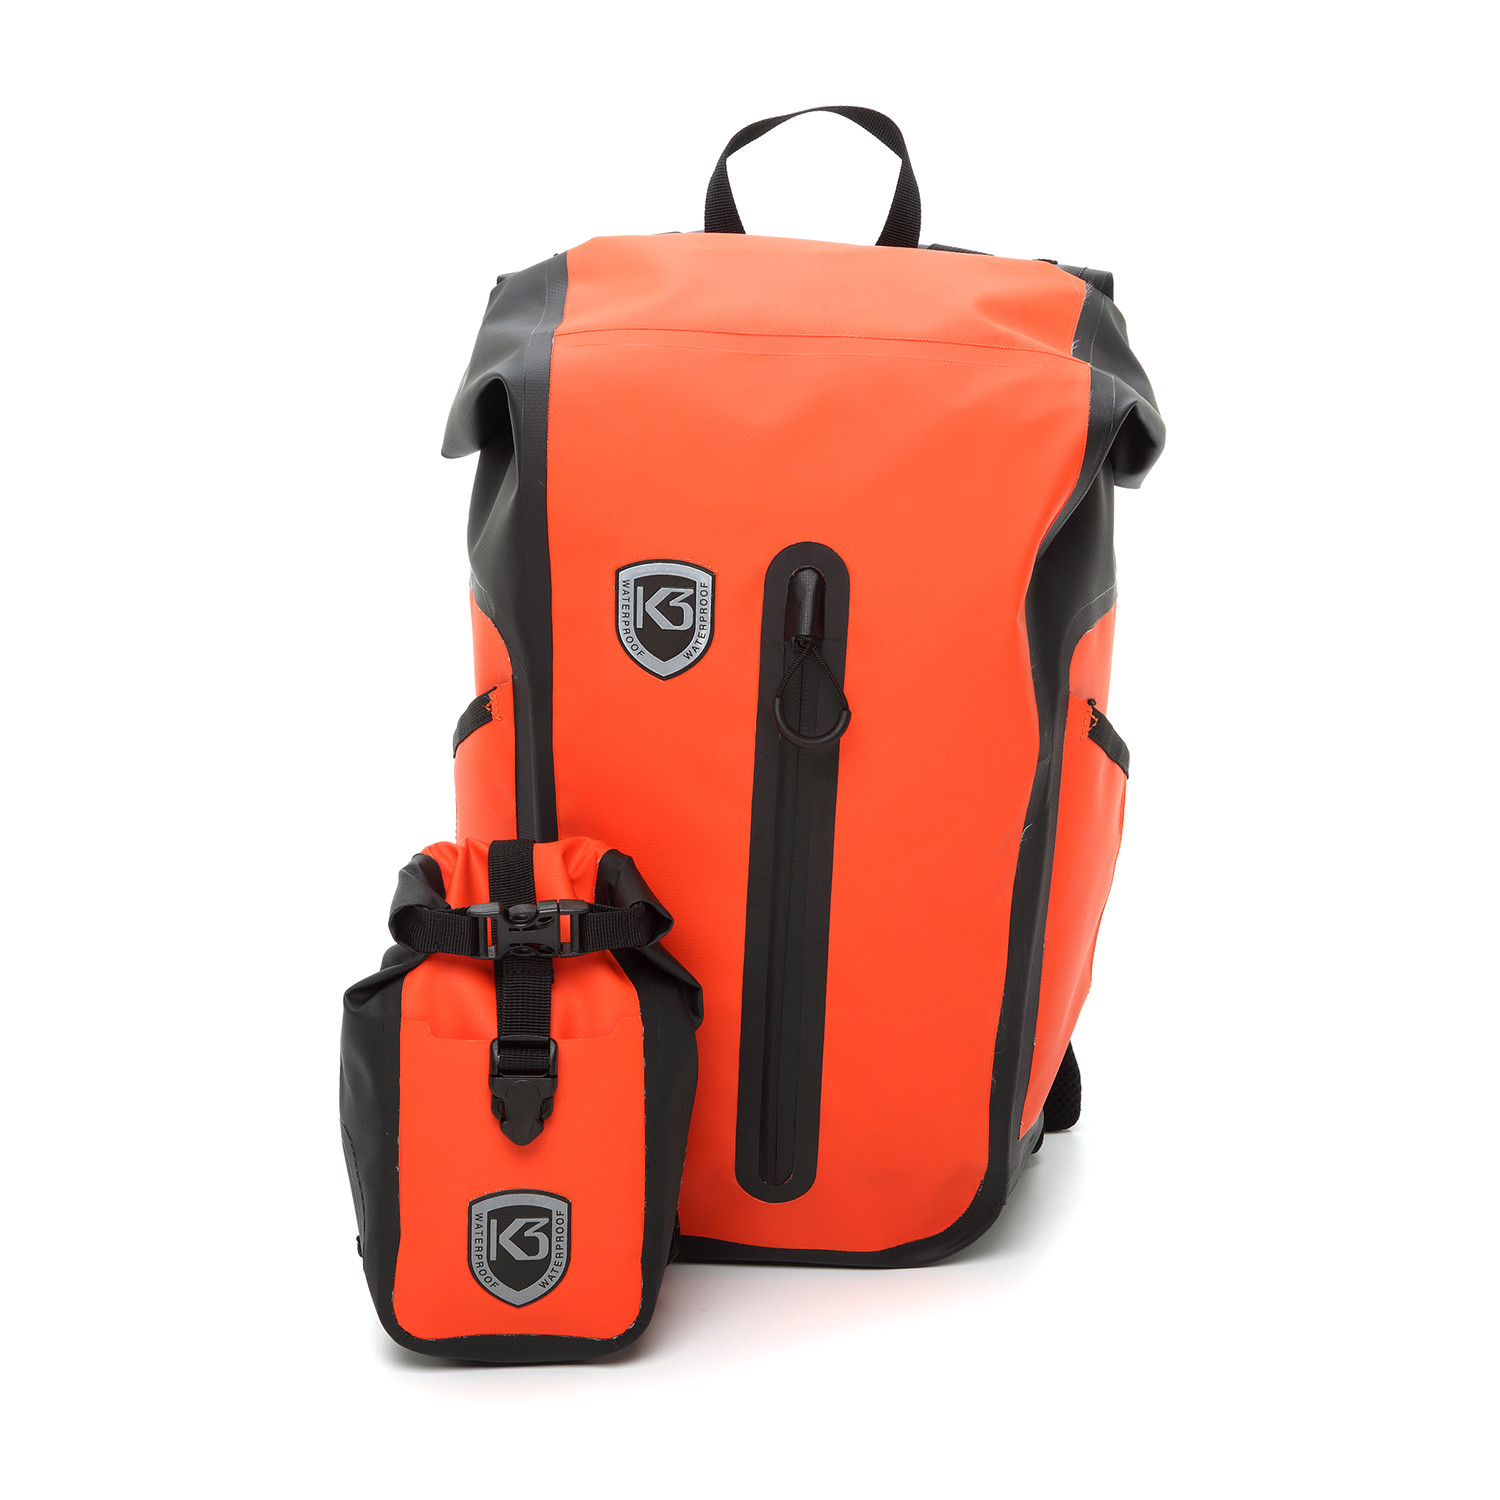 12a82bd6d913 Waterproof Sport Backpack    22 Liter (Orange Matte) - K3 ...